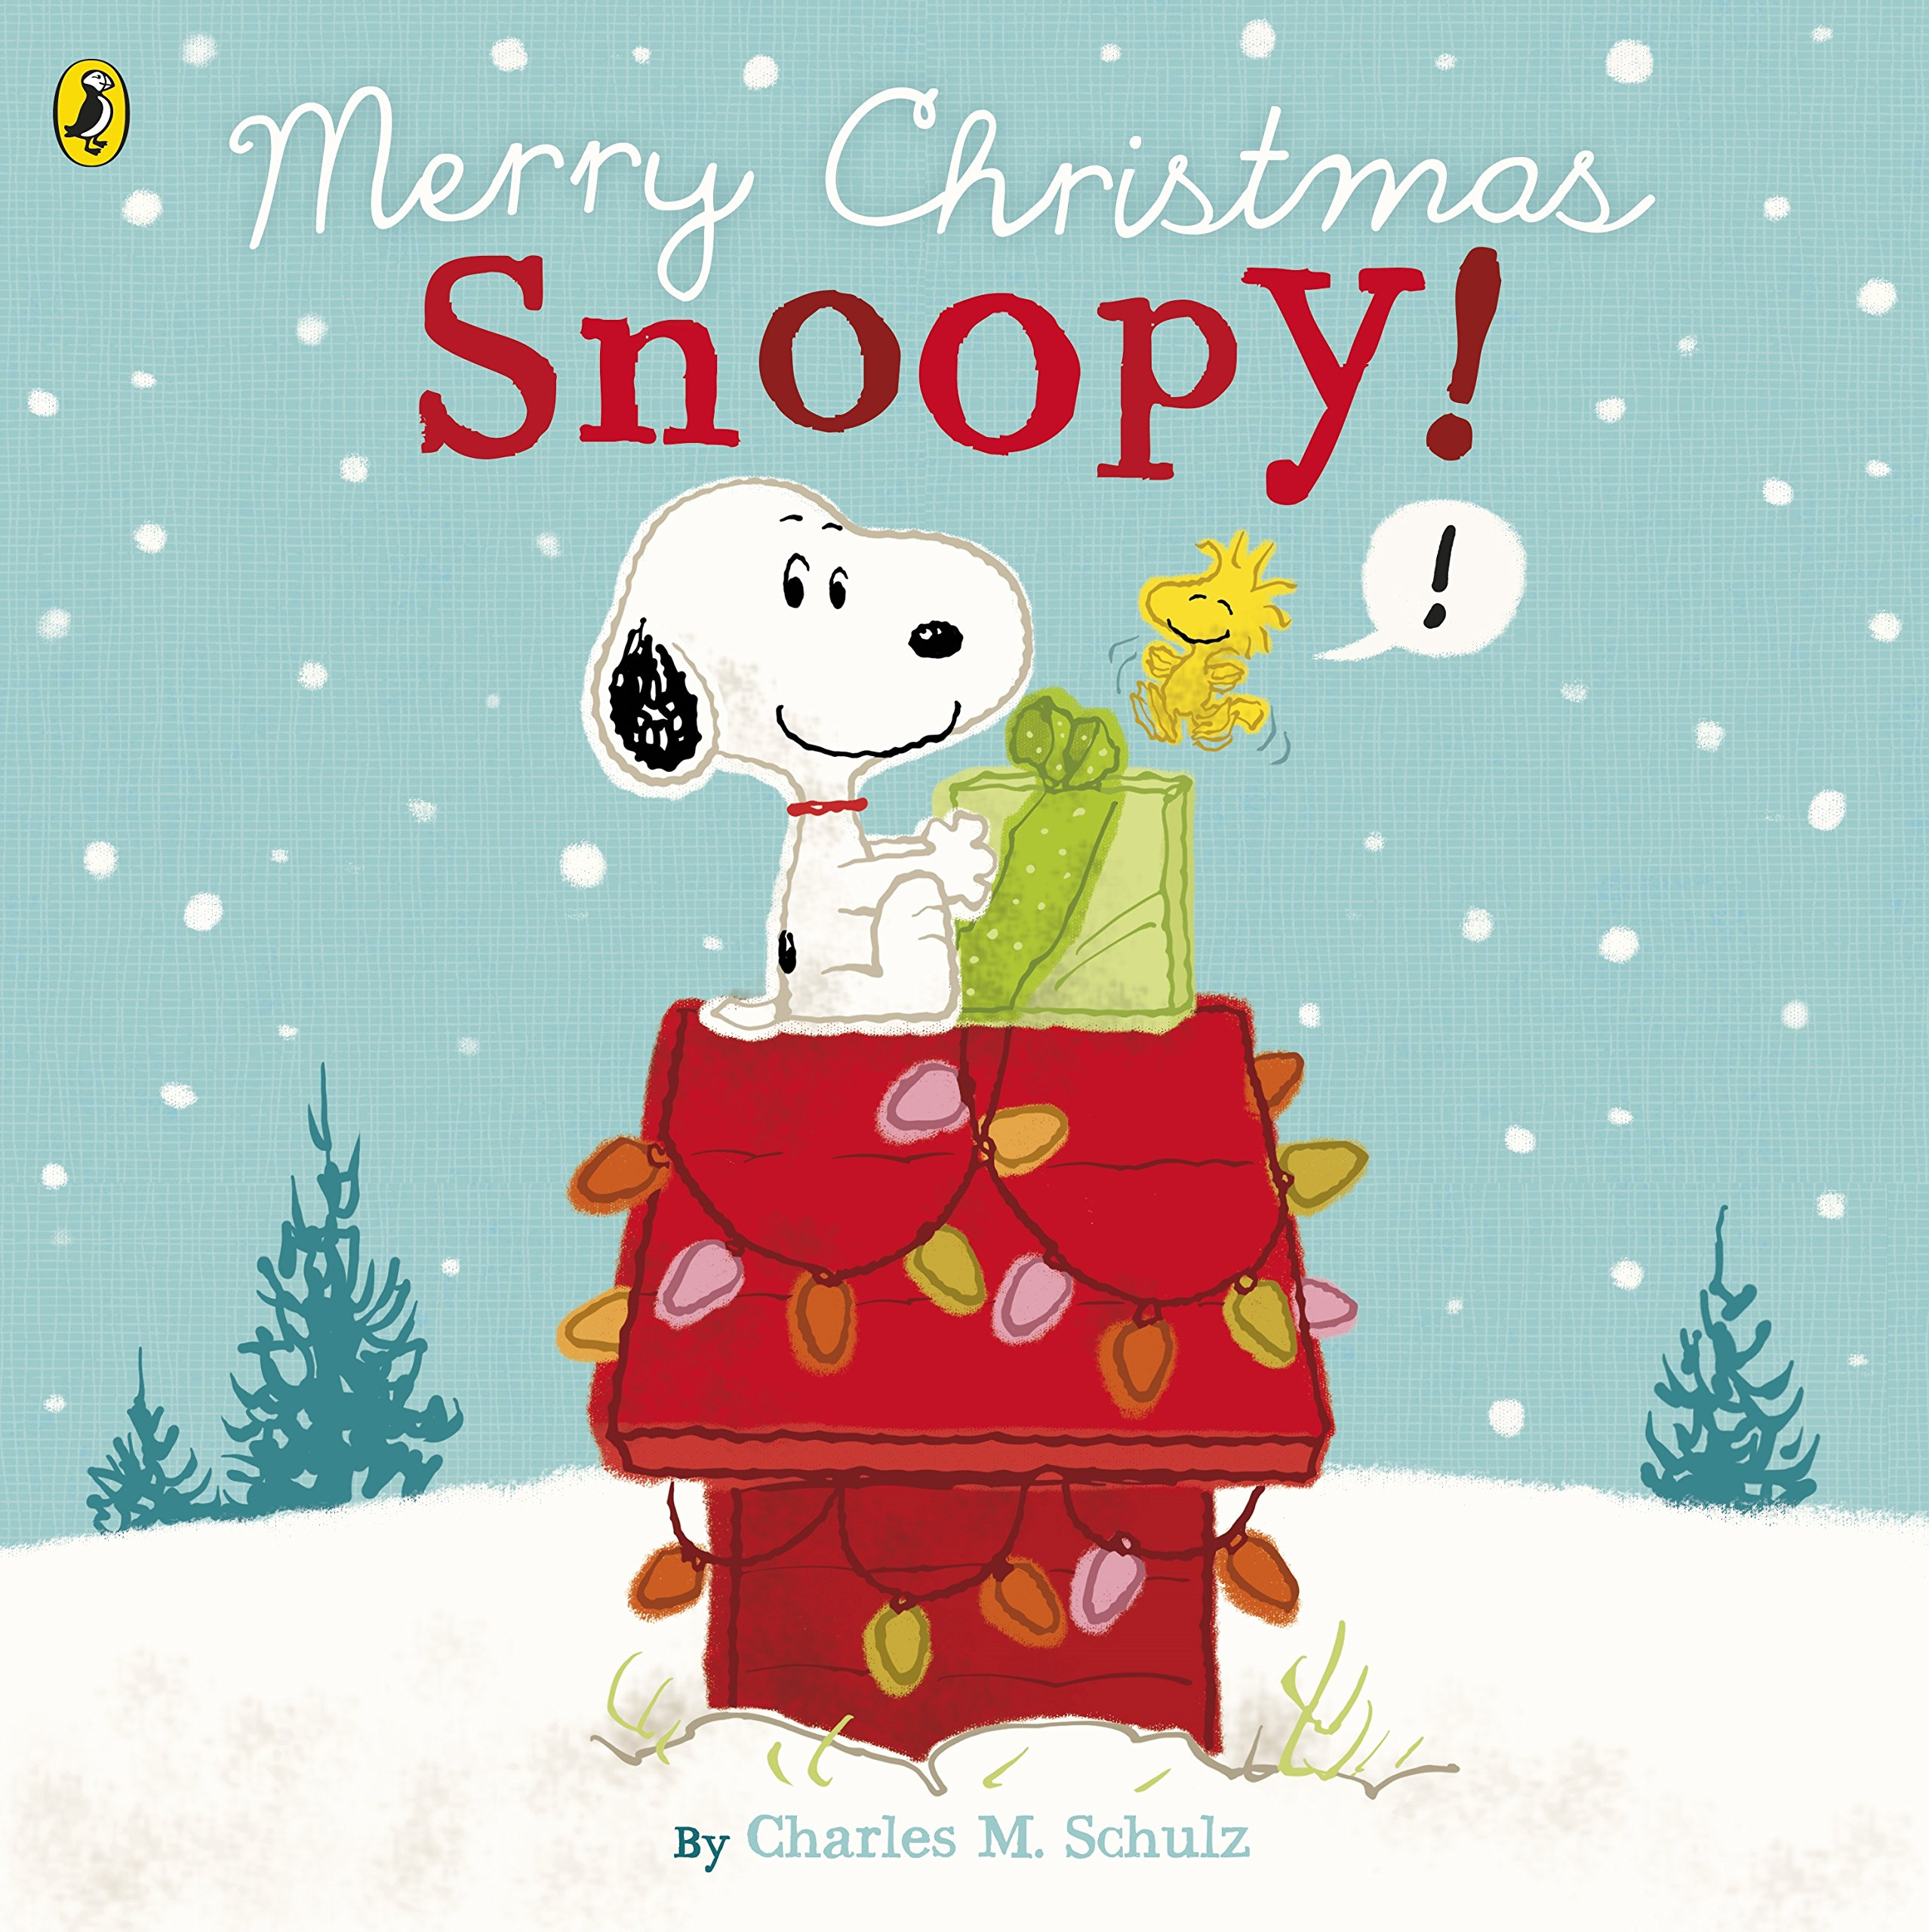 Snoopy Merry Christmas Images.Peanuts Merry Christmas Snoopy Amazon Co Uk Charles M Schulz Books